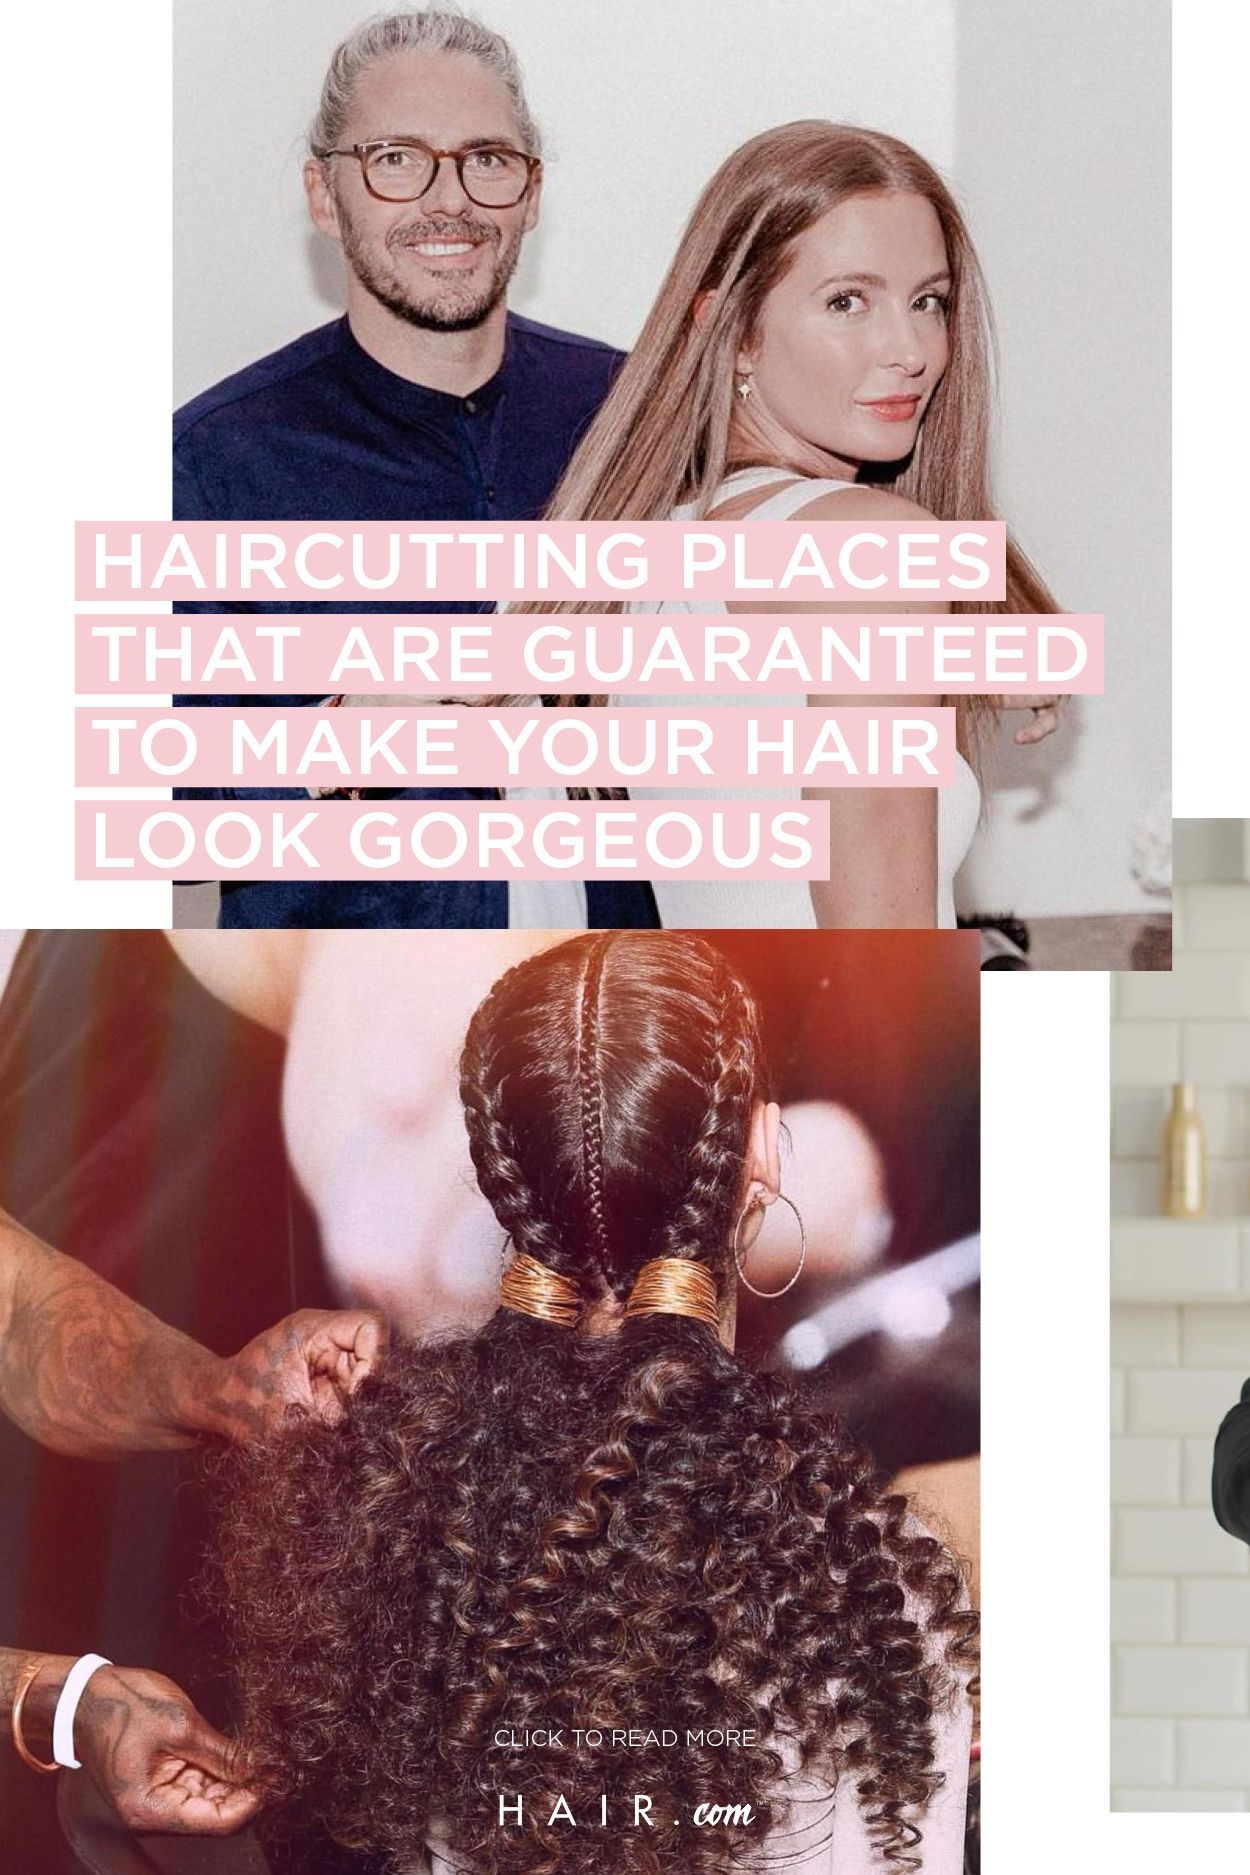 Haircutting Places That Are Guaranteed To Make Your Hair